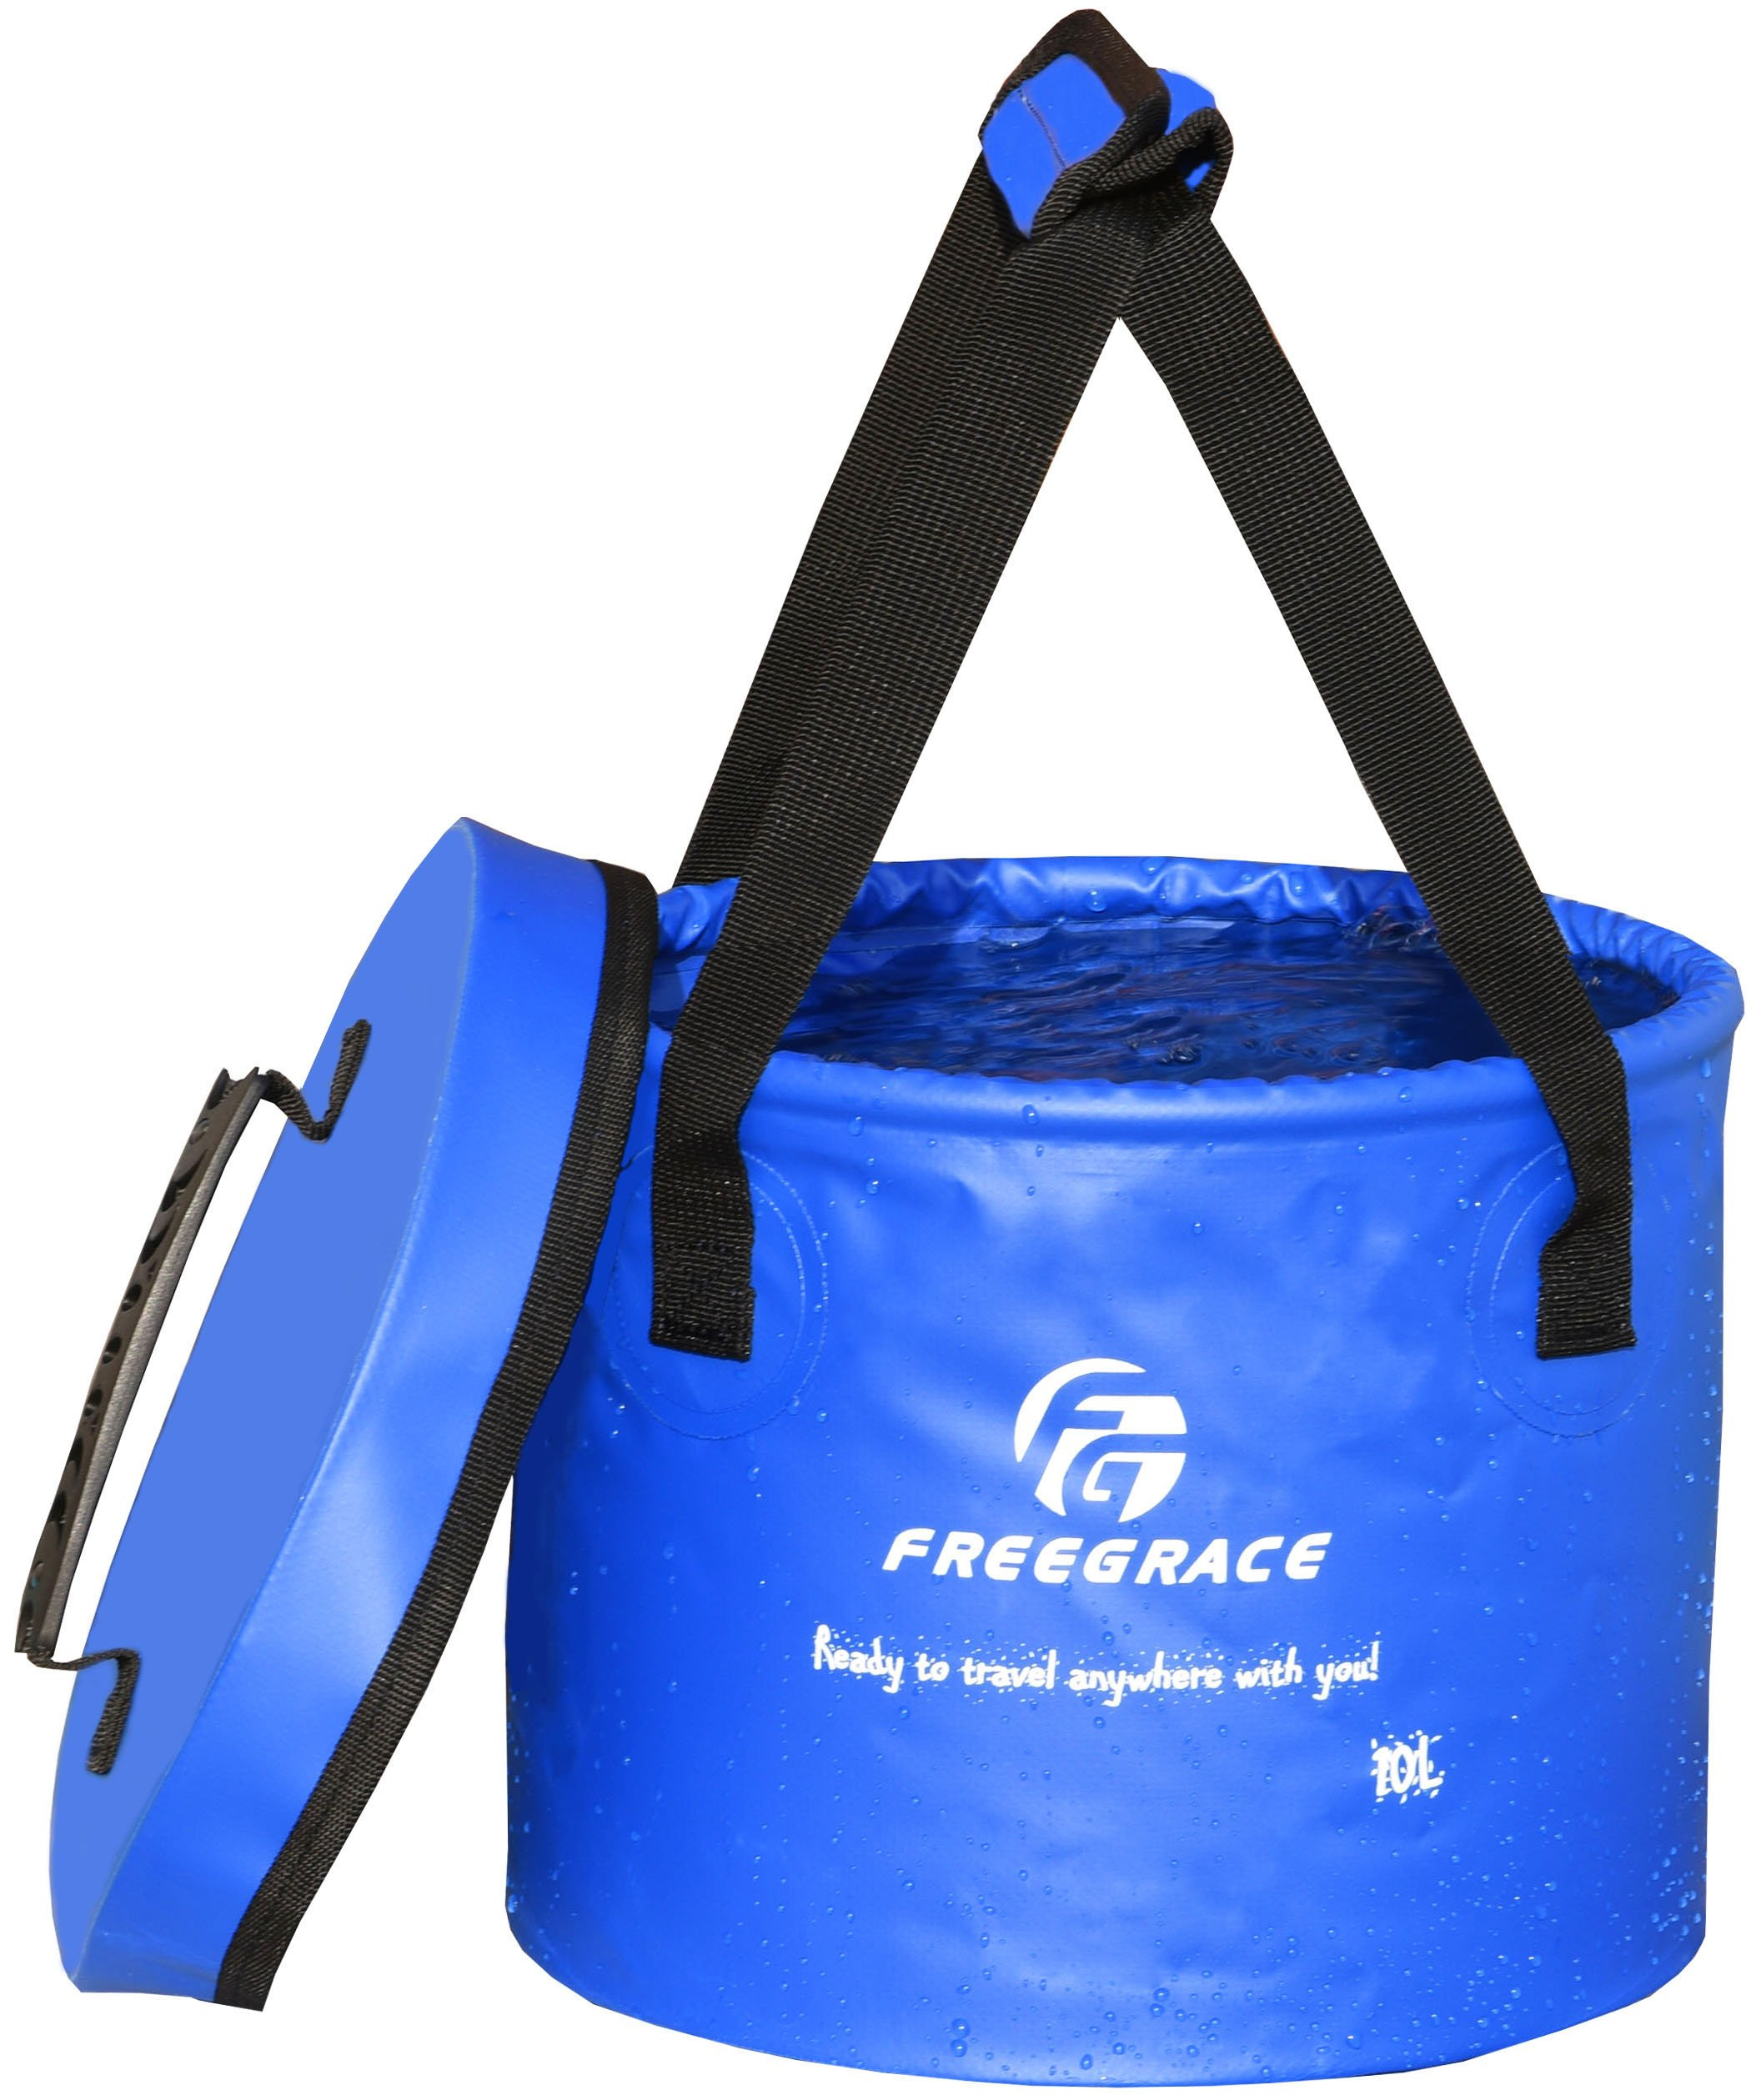 Freegrace Premium Collapsible Bucket -Multifunctional Folding Bucket -Perfect Gear for Camping, Hiking & Travel (Navy Blue, 10L(Upgraded)) by Freegrace